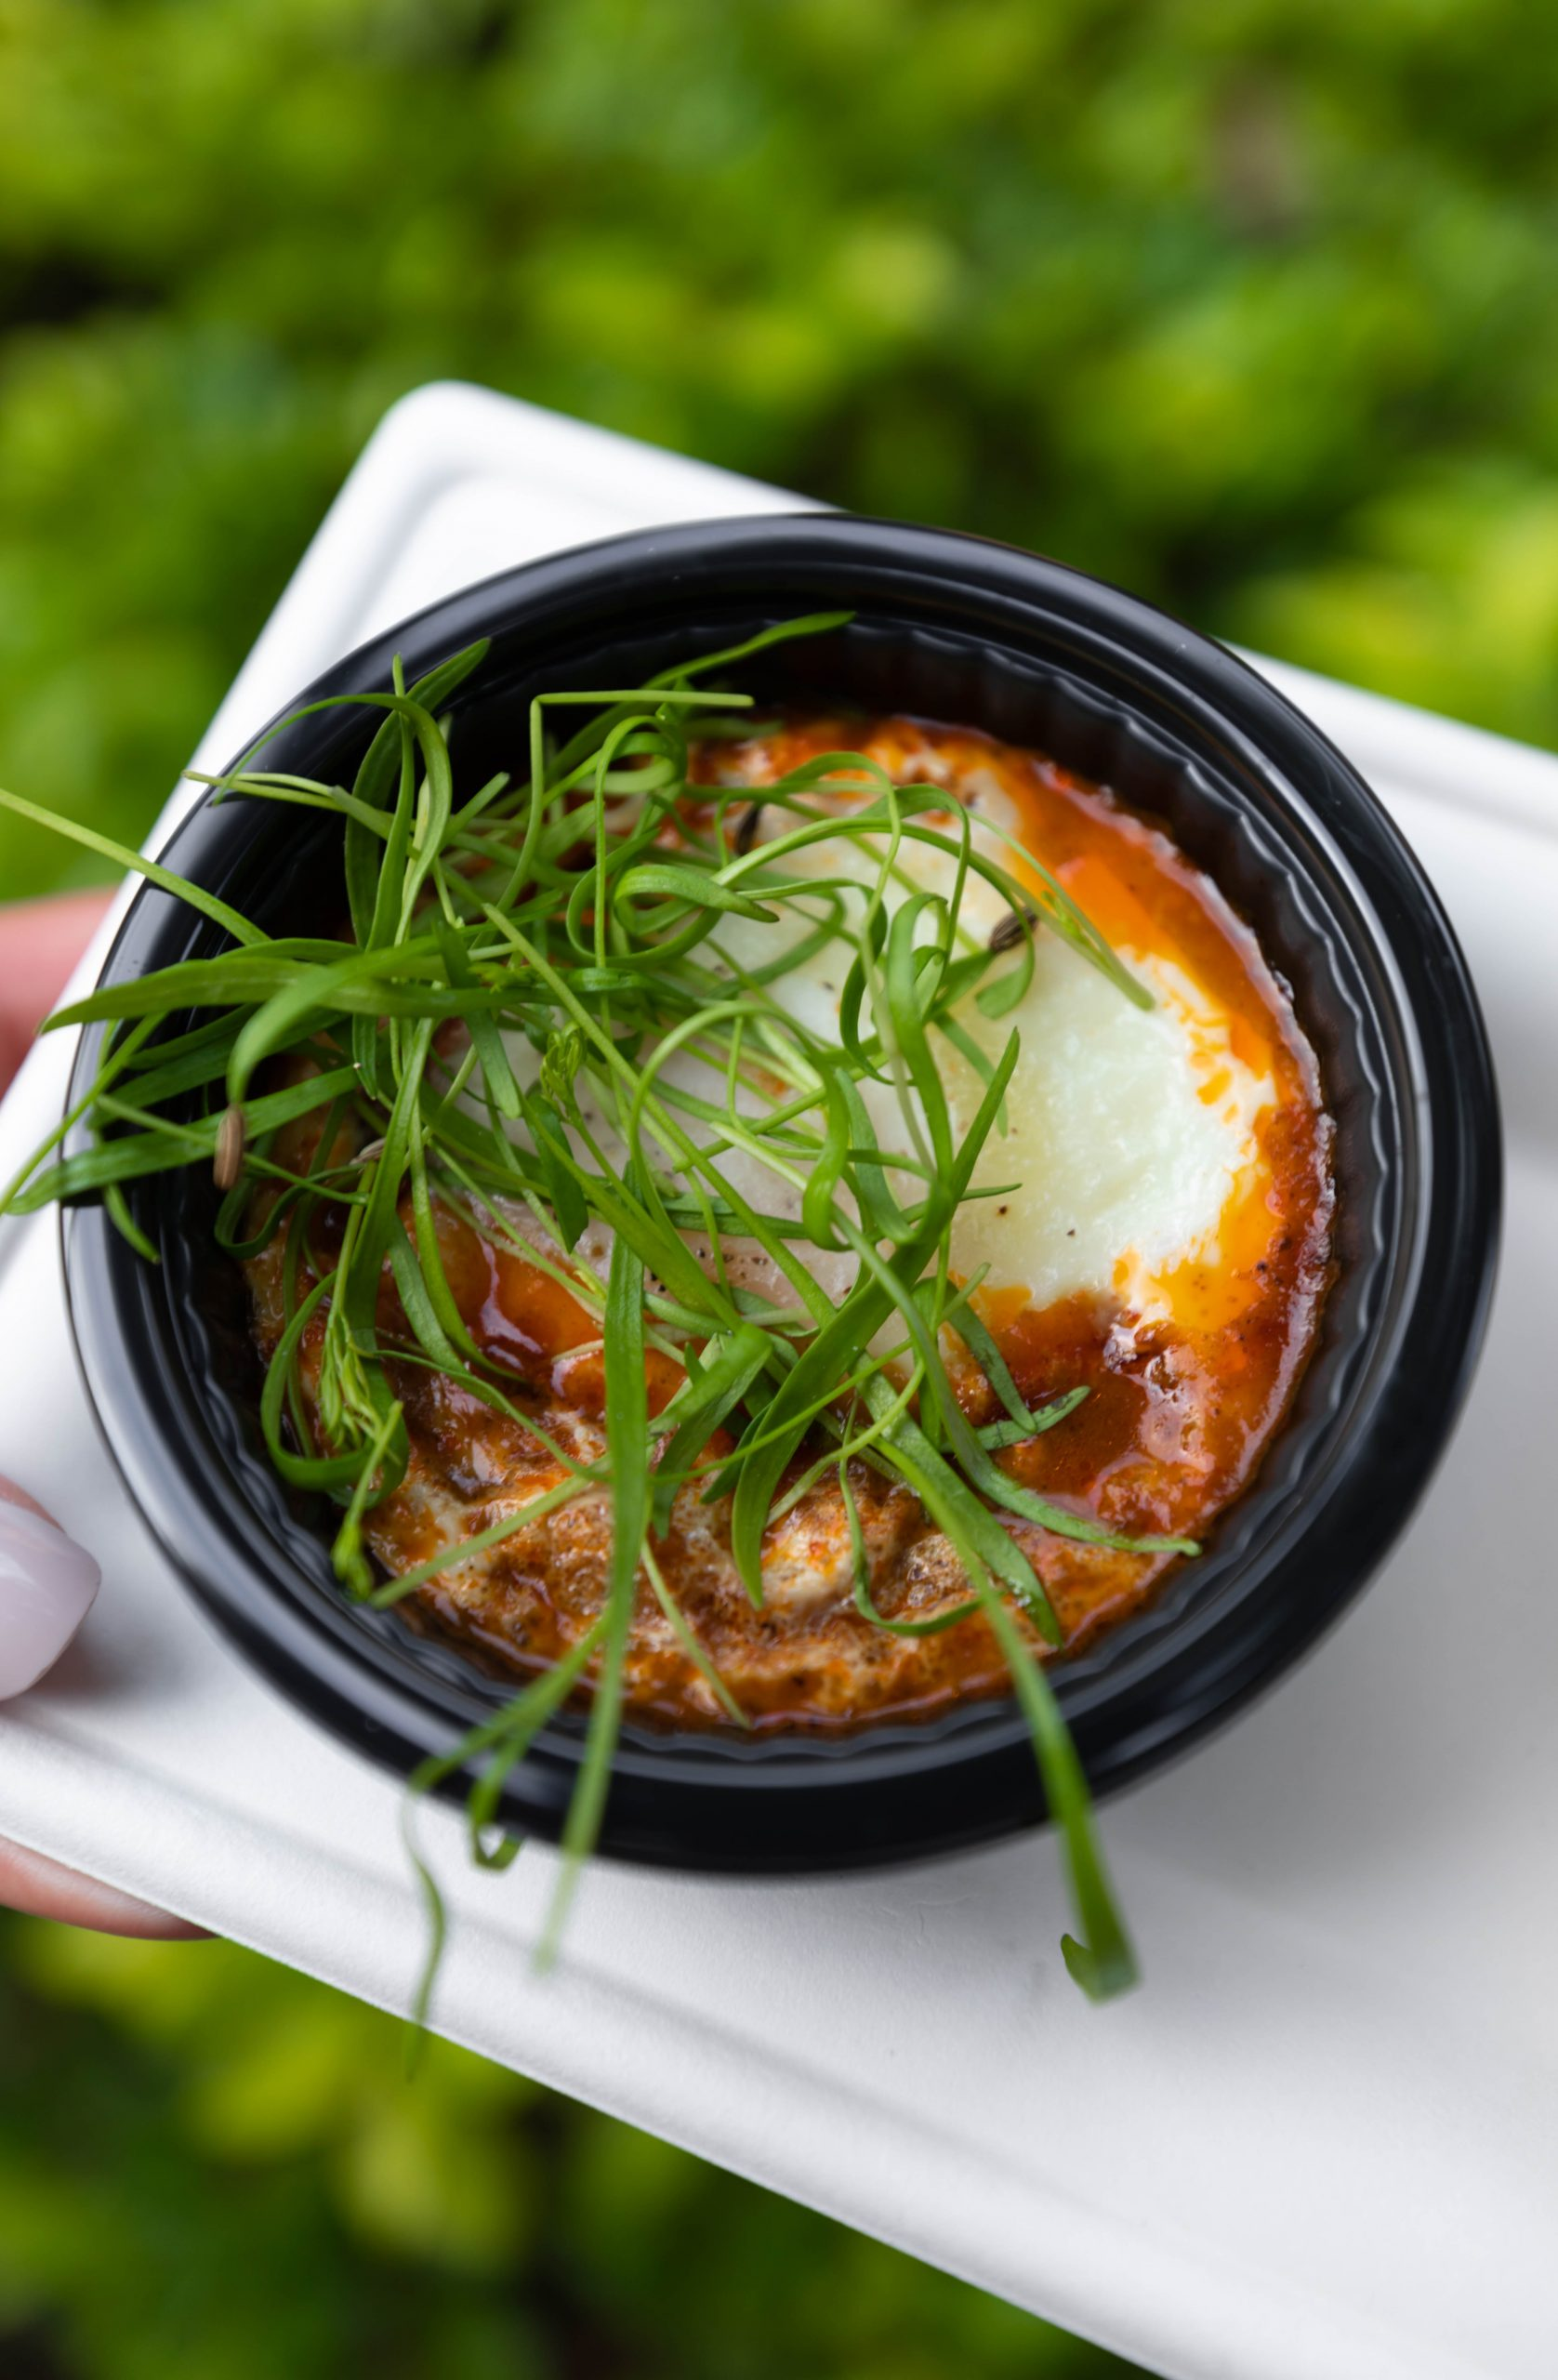 Shakshuka Moroccan Baked Eggs in a Spiced Eggplant and Tomato Stew from La Isla Fresca between Morocco and France at Epcot in Walt Disney World Orlando Florida Photographed by Annie Fairfax